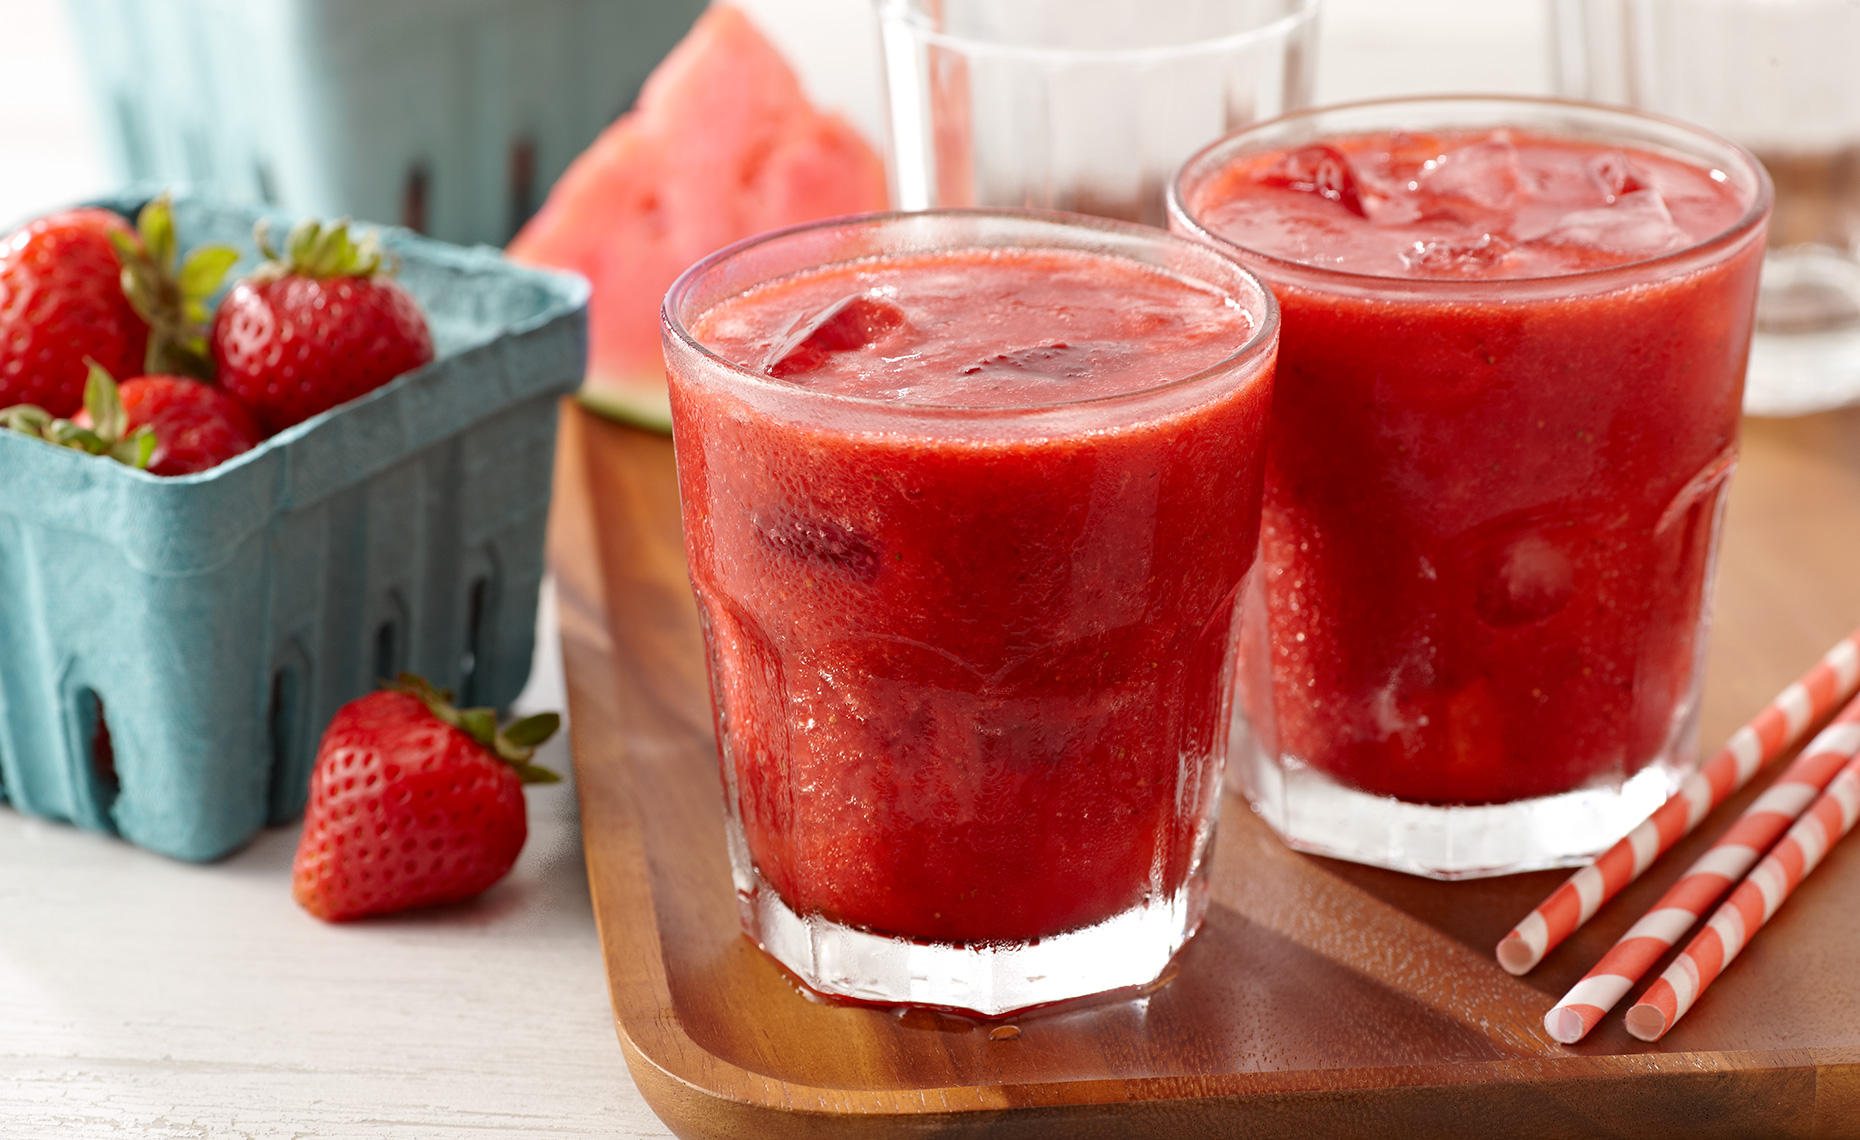 Food Photographer, Vegetable photography, Fruit photography | Pohuski Studios,  Strawberry Watermelon Slushie